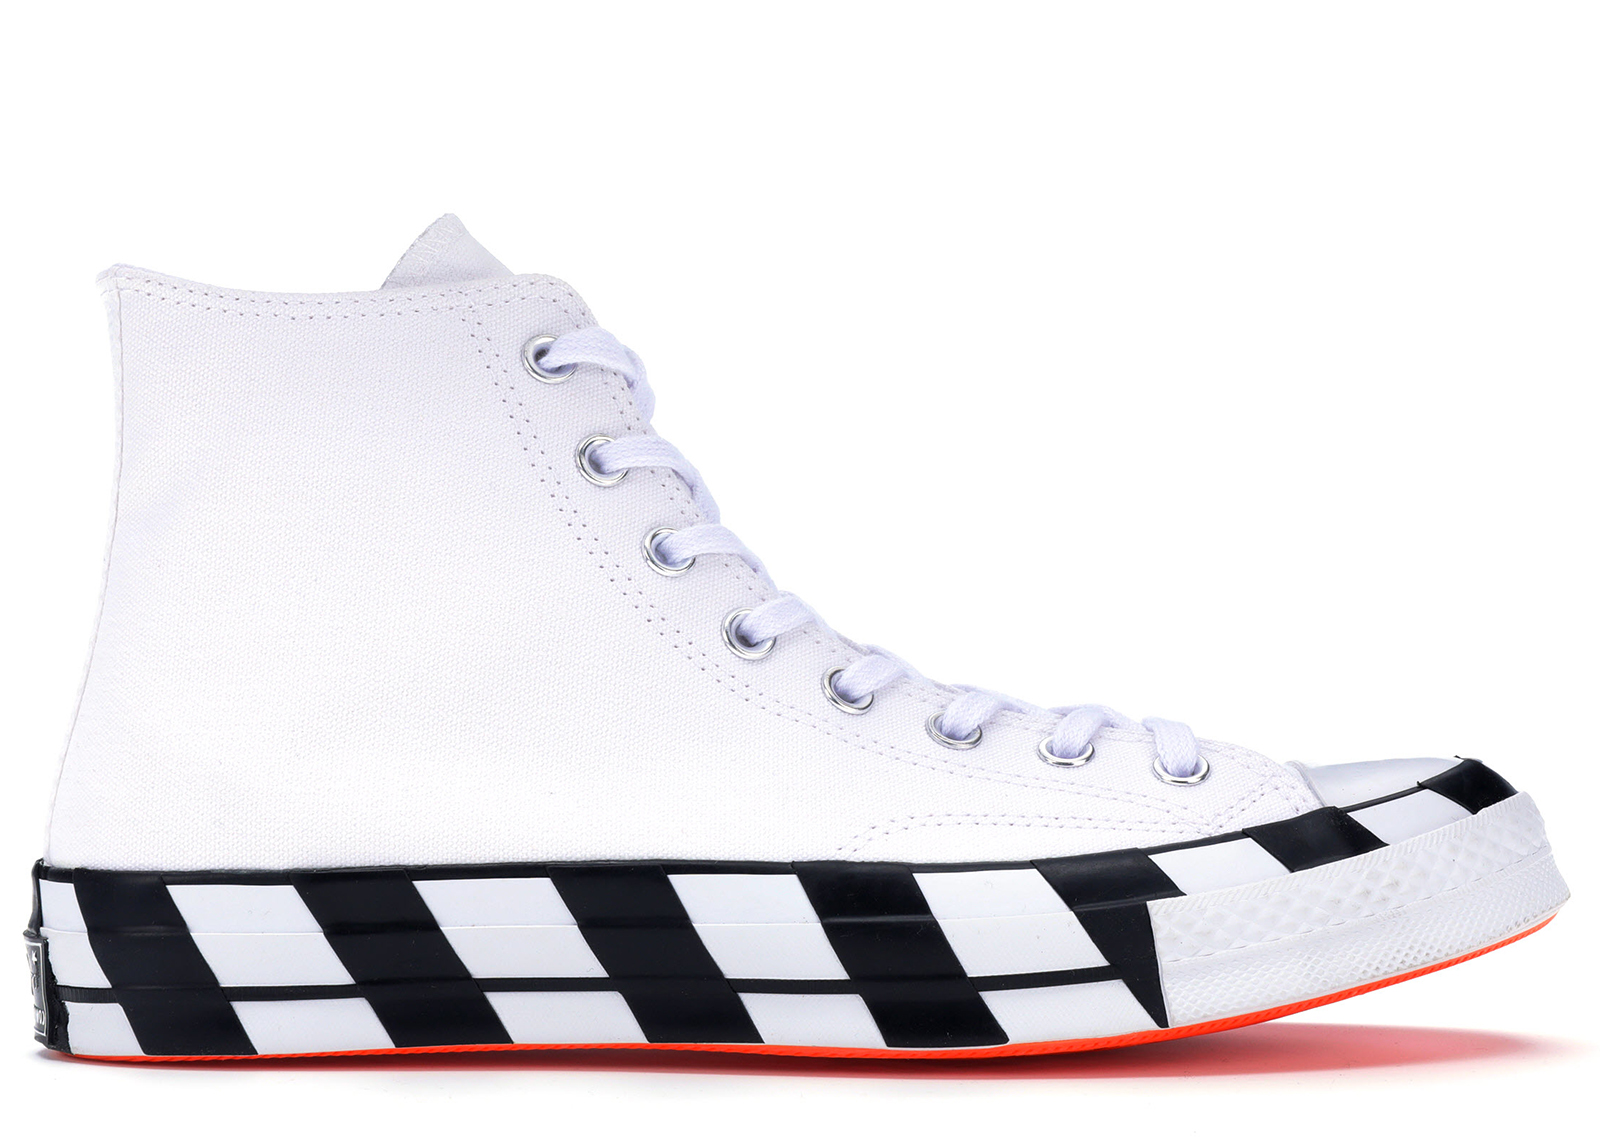 Converse Chuck Taylor All-Star 70s Hi Off-White - 163862C